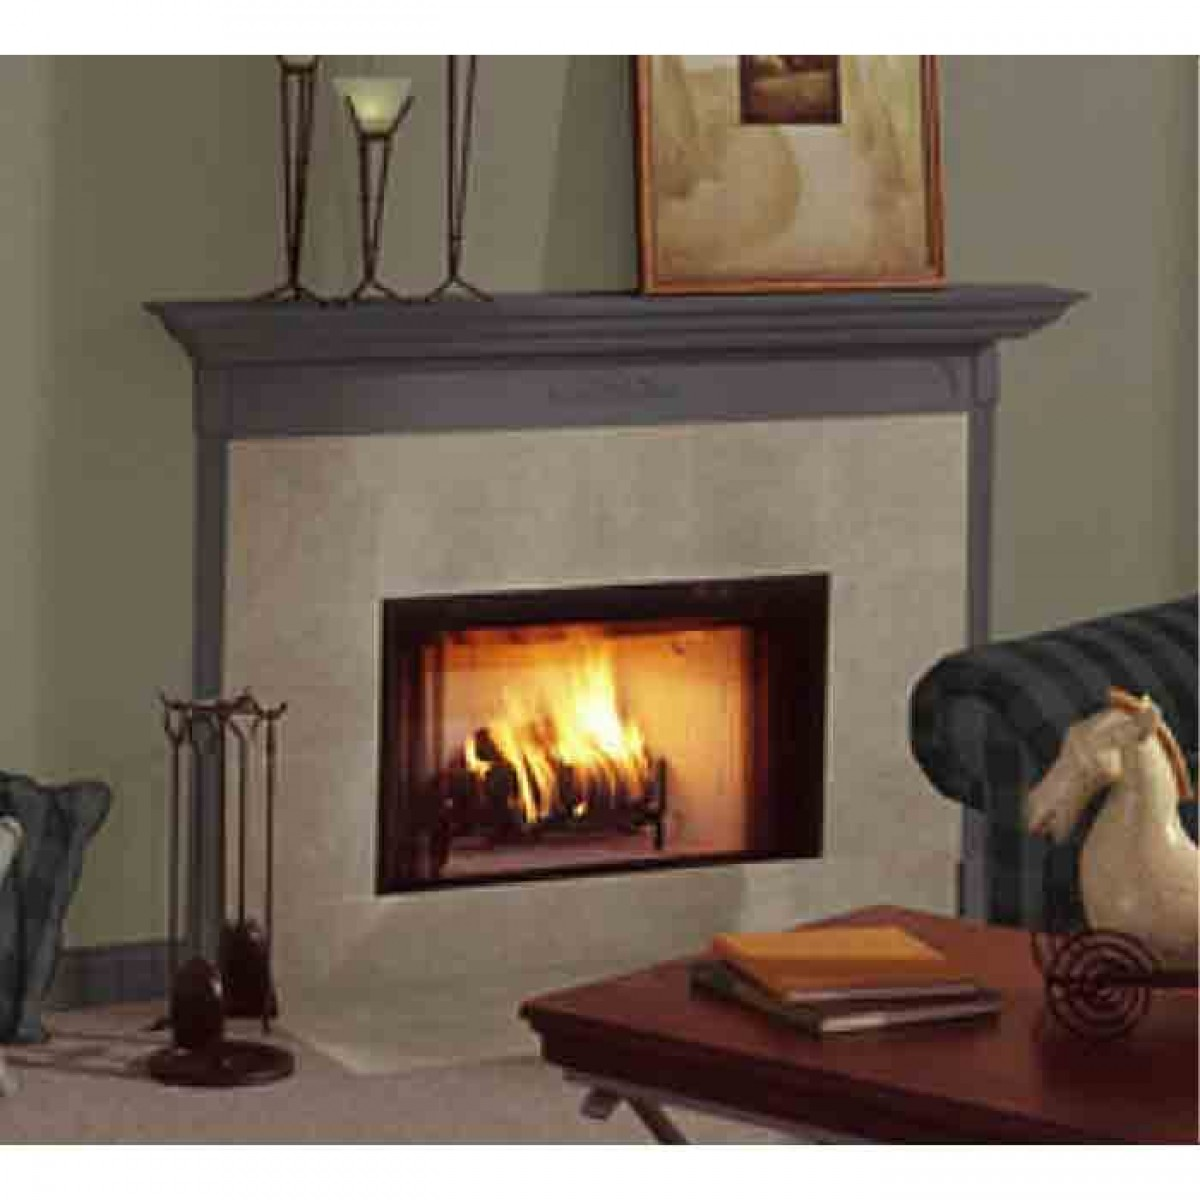 Majestic Bcbv36i Builders Choice Open Hearth B Vent Gas Fireplace Radiant Intellifire Ng At